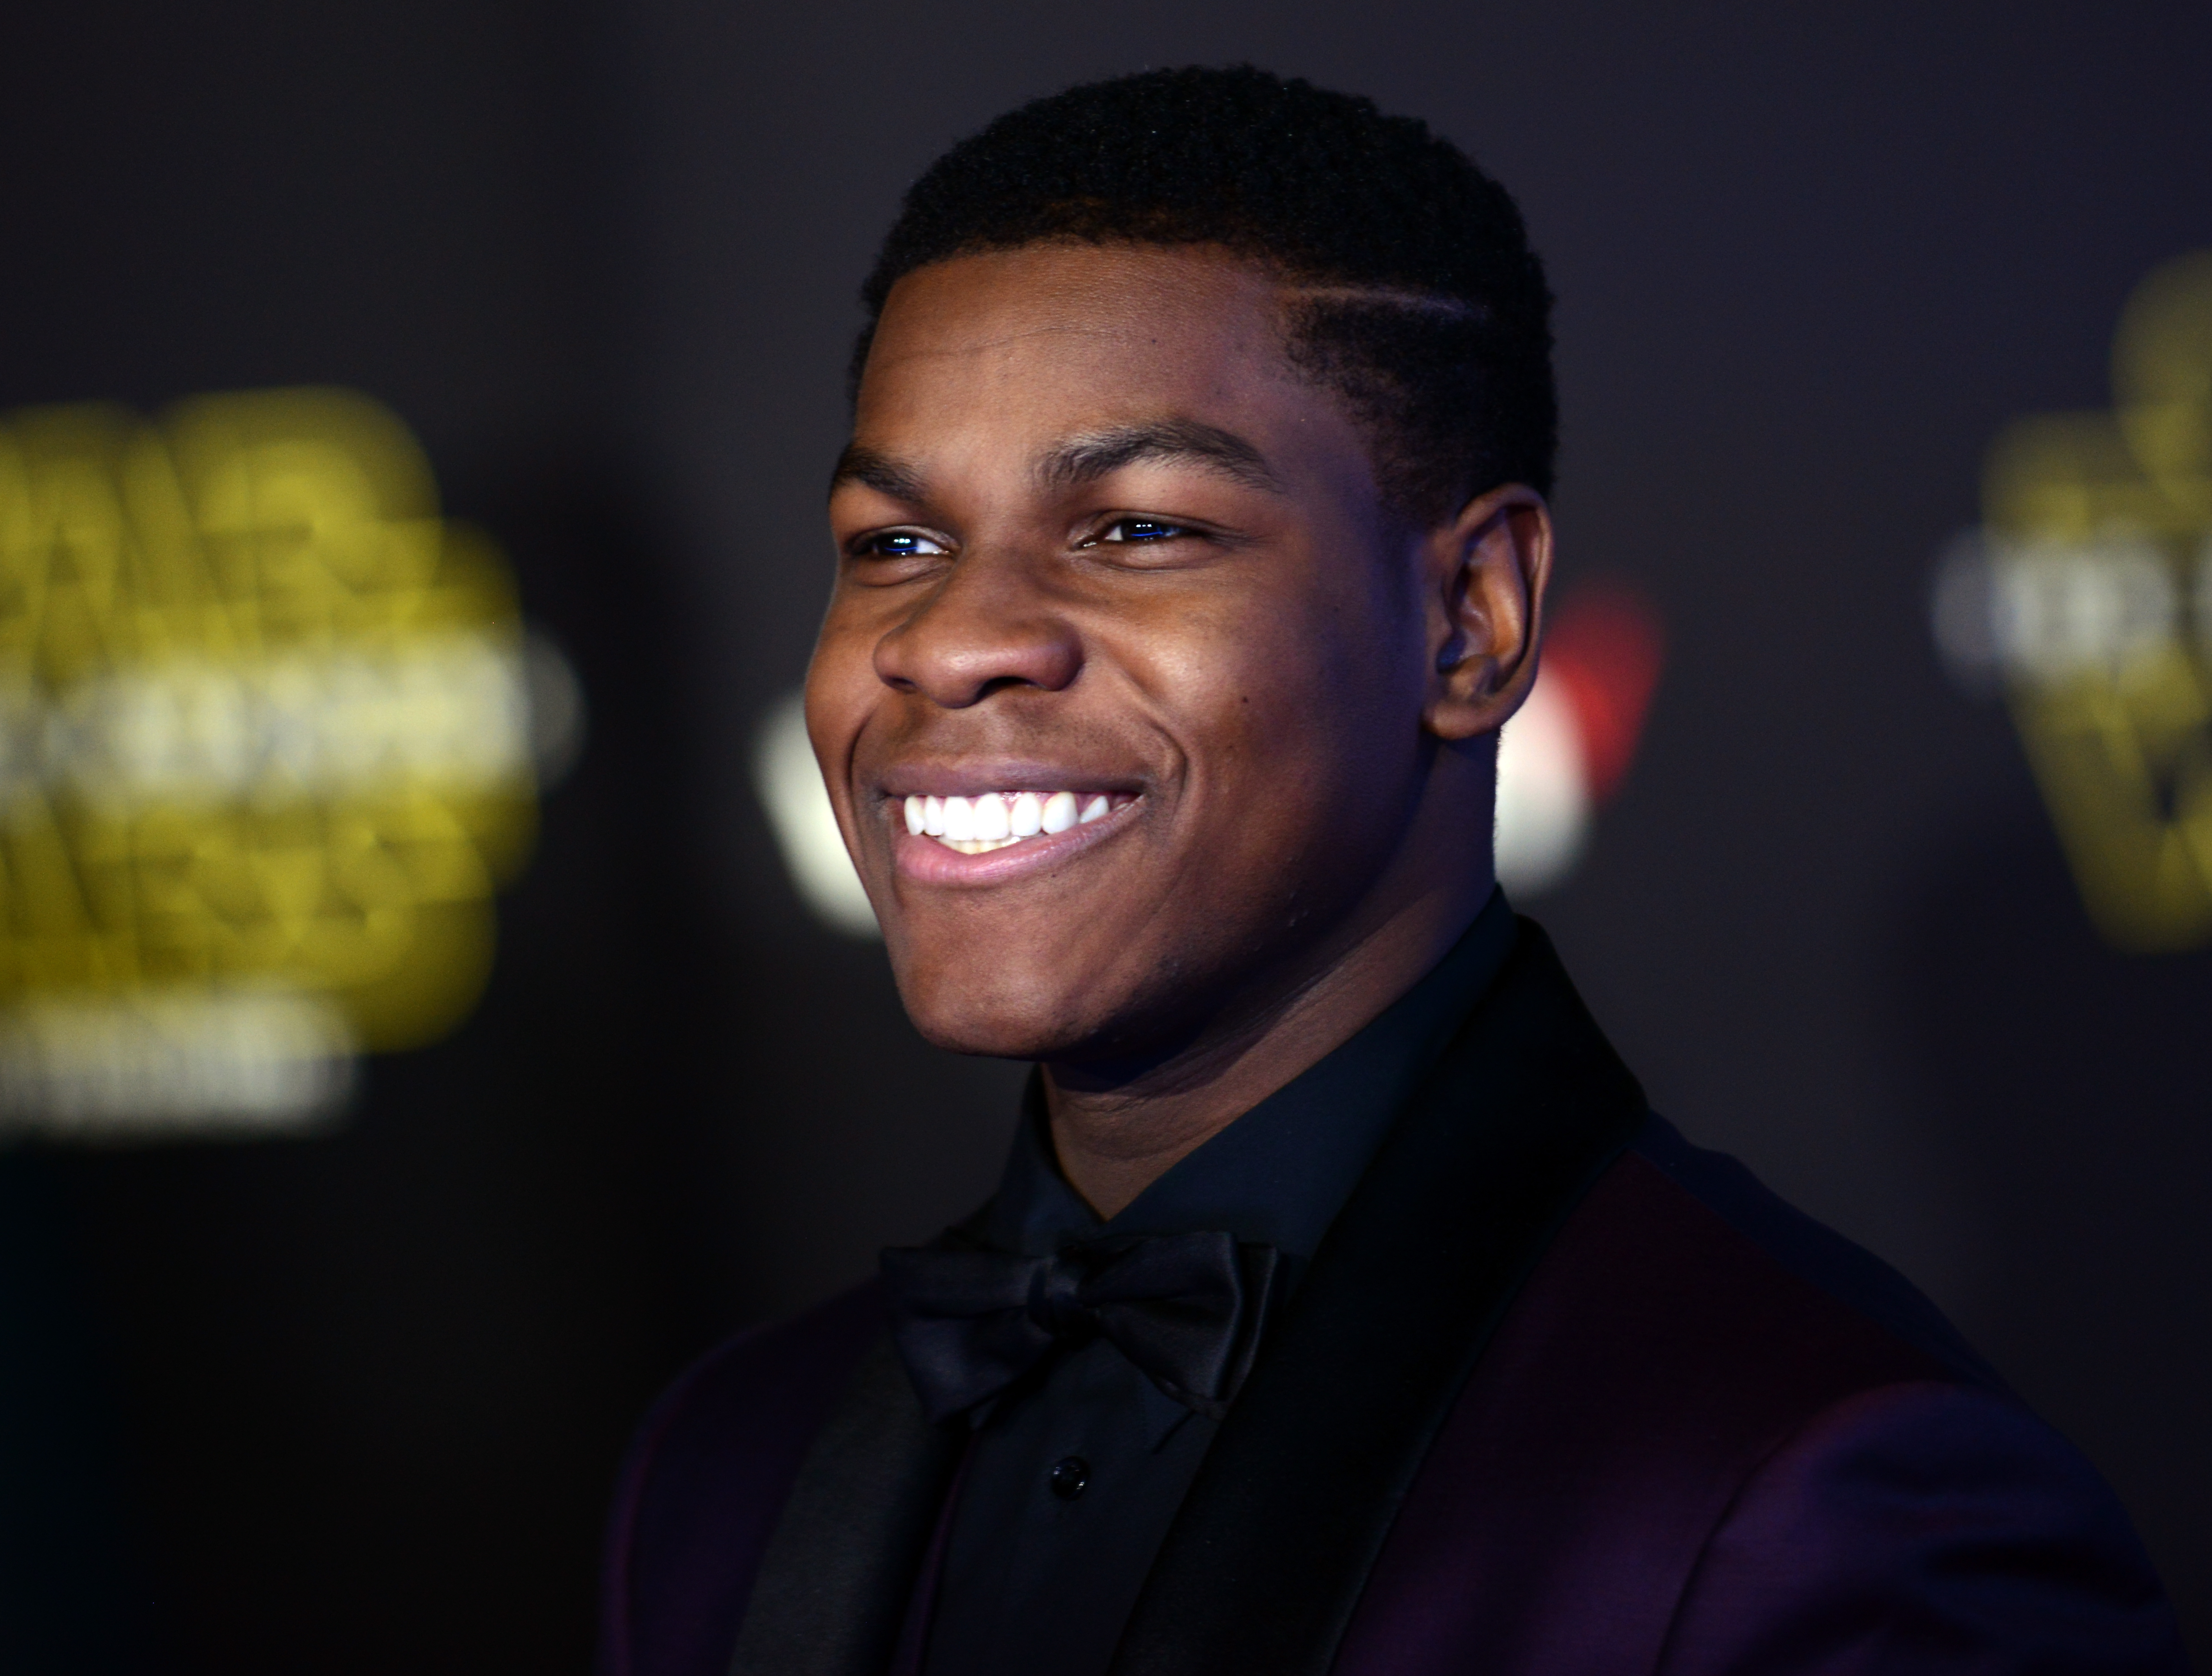 John Boyega arrives for the  Star Wars: The Force Awakens  premiere on Dec. 14, 2015 in Hollywood, CA.